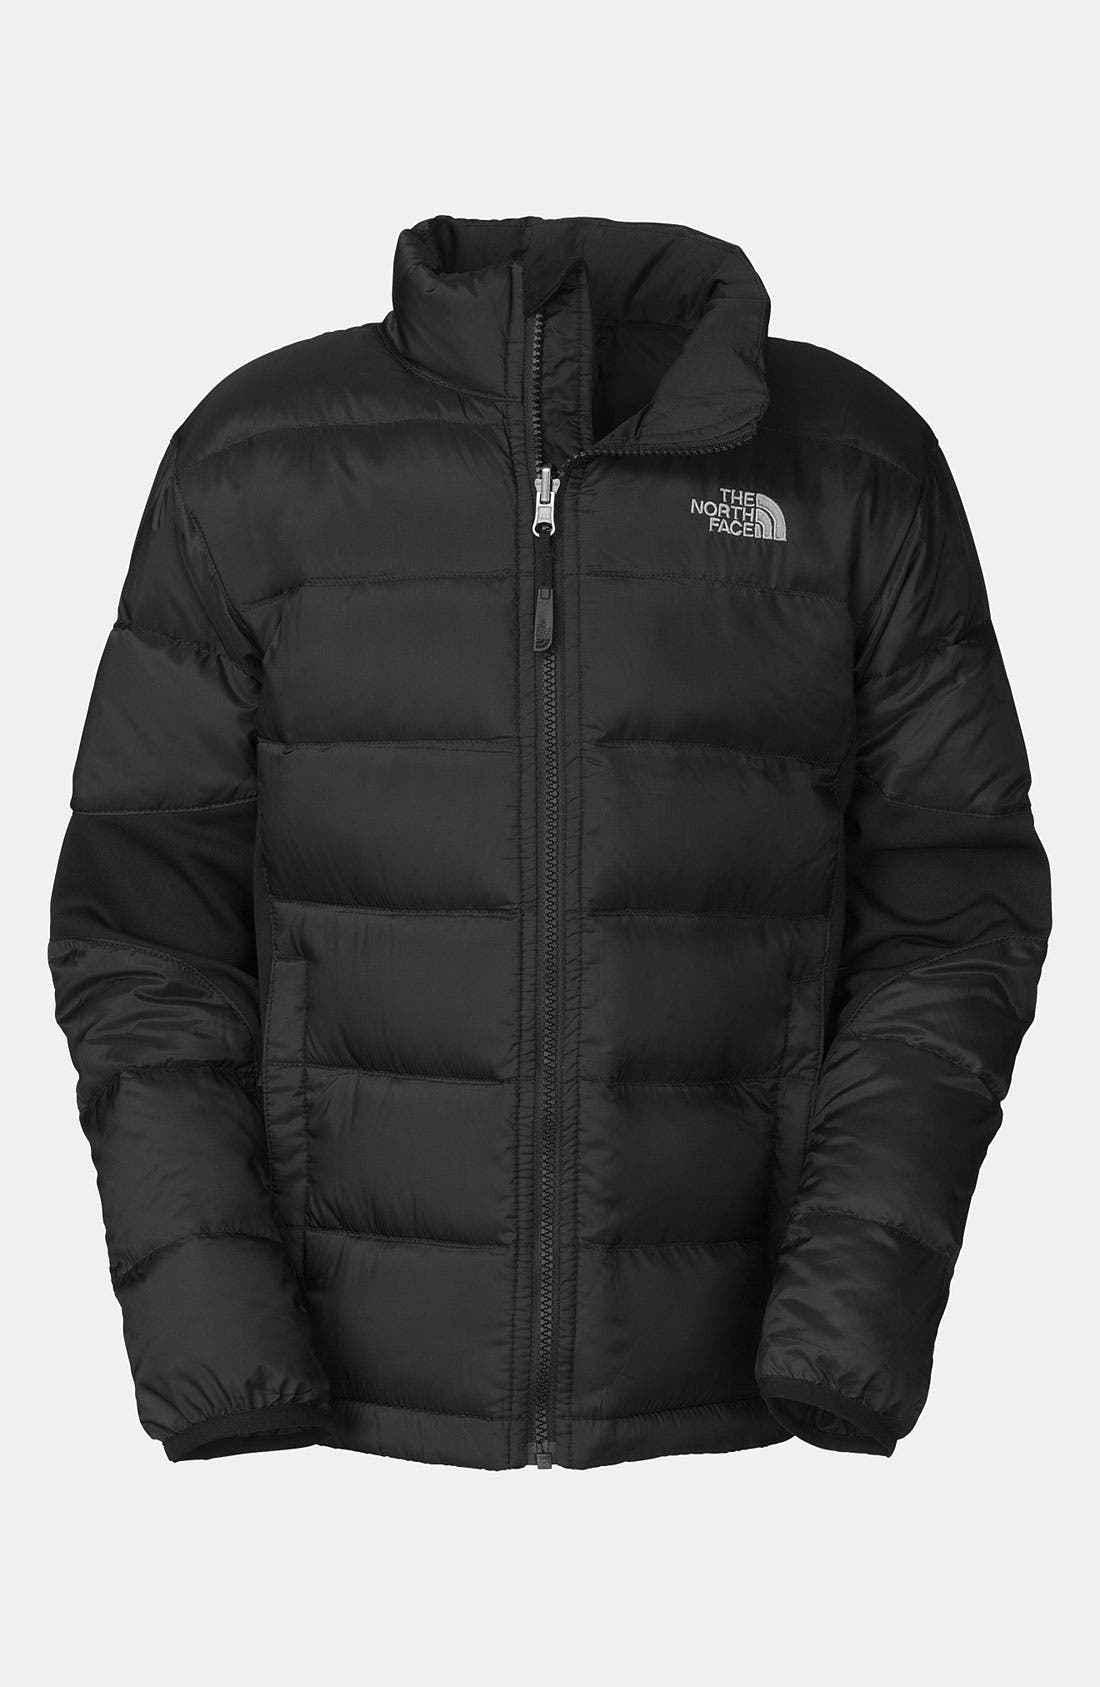 Main Image - The North Face 'Lil' Crympt' Down Jacket (Big Boys)